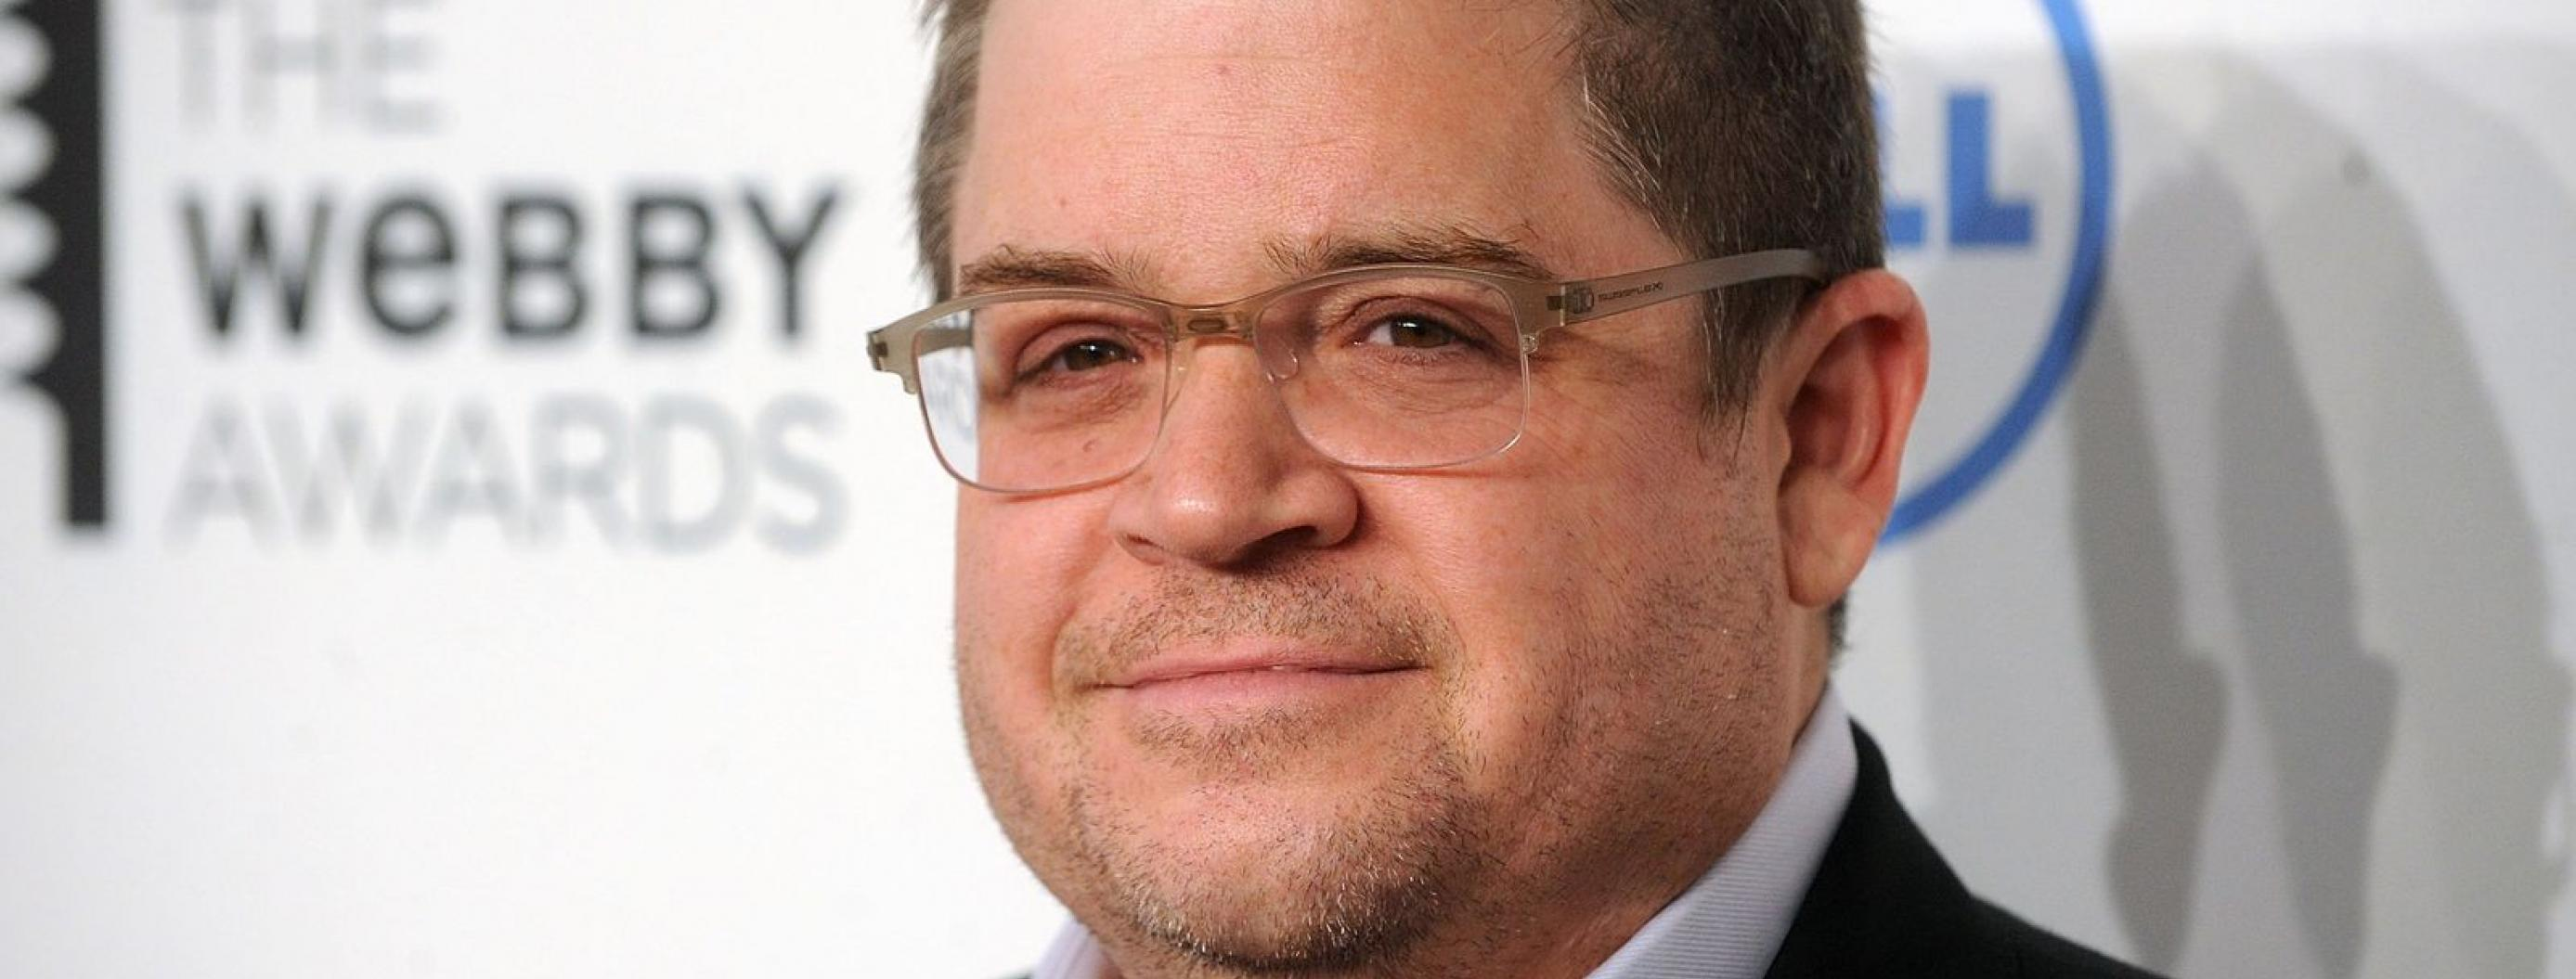 Patton Oswalt Helps Trump Supporter with Medical Bills after Twitter Fight